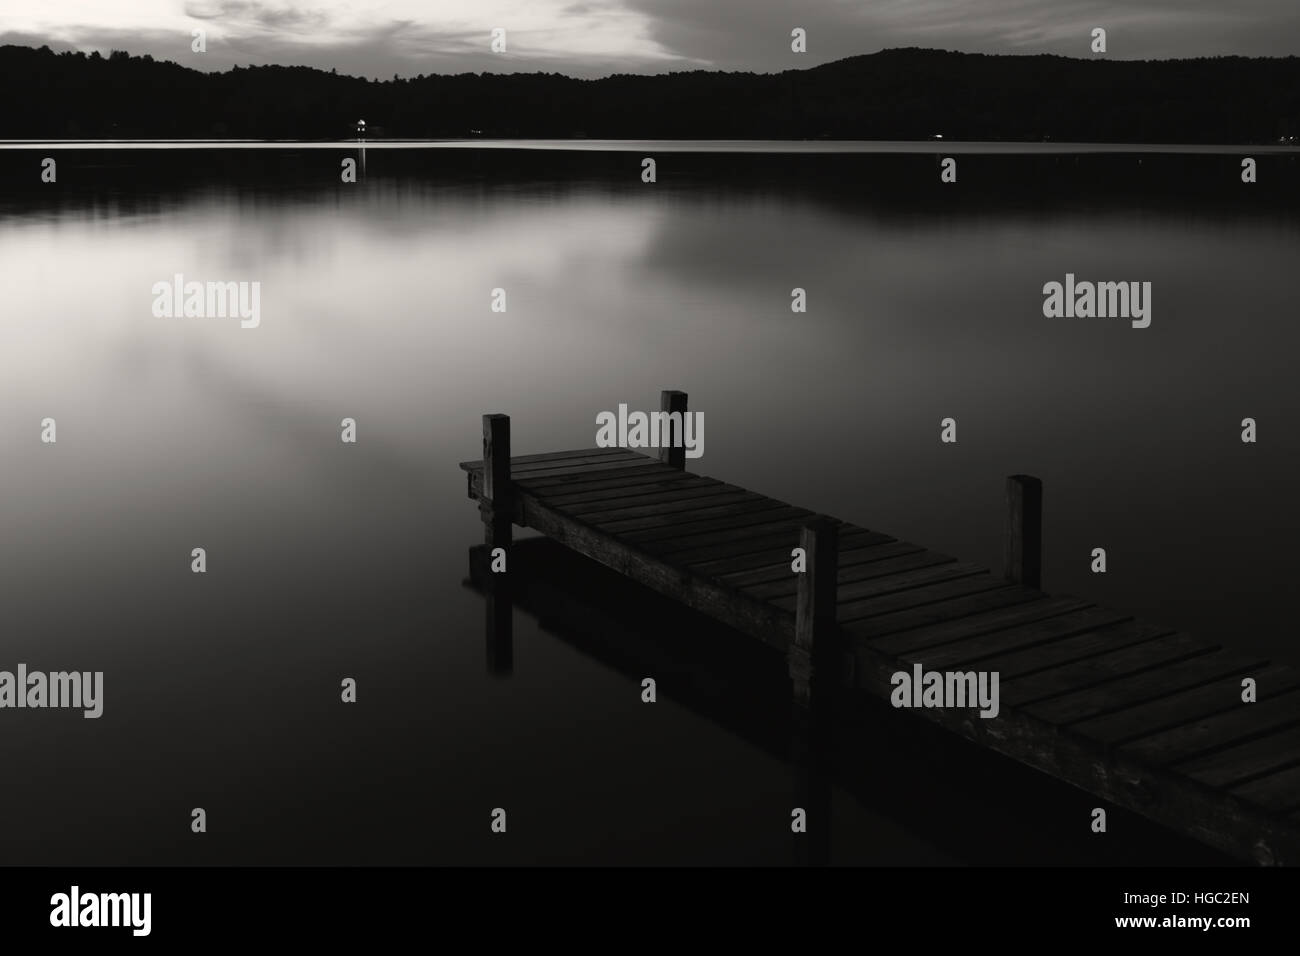 Old wooden jetty at night on a mirror calm lake with reflections and silhouettes long exposure monochrome - Stock Image